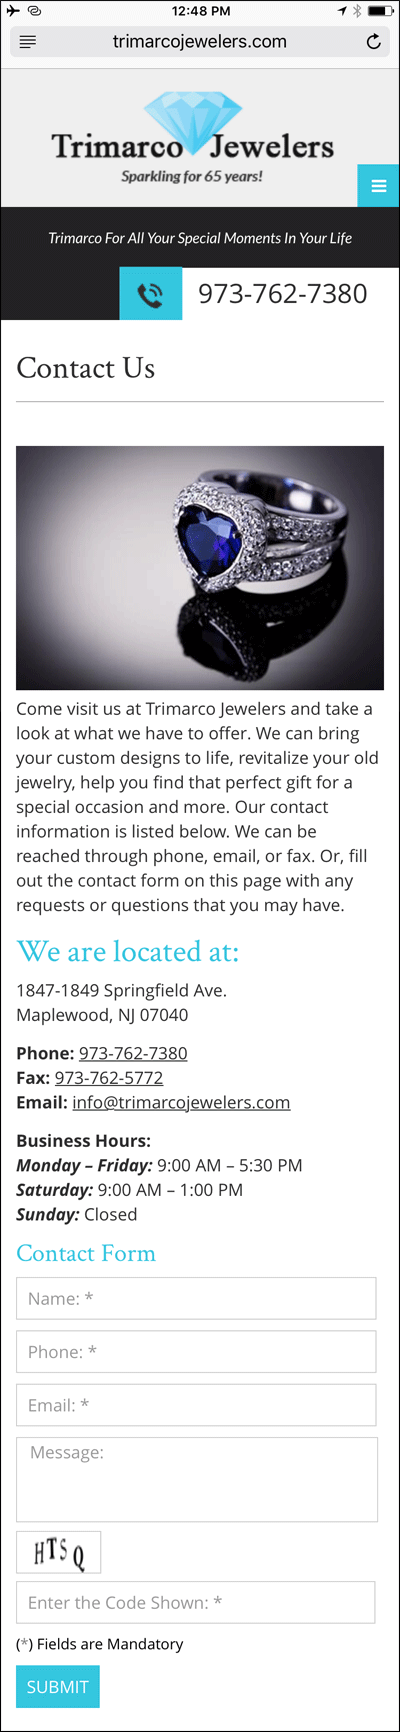 Trimarco Jewelers FridayFlopFix Website Review 1502-contact-page-20